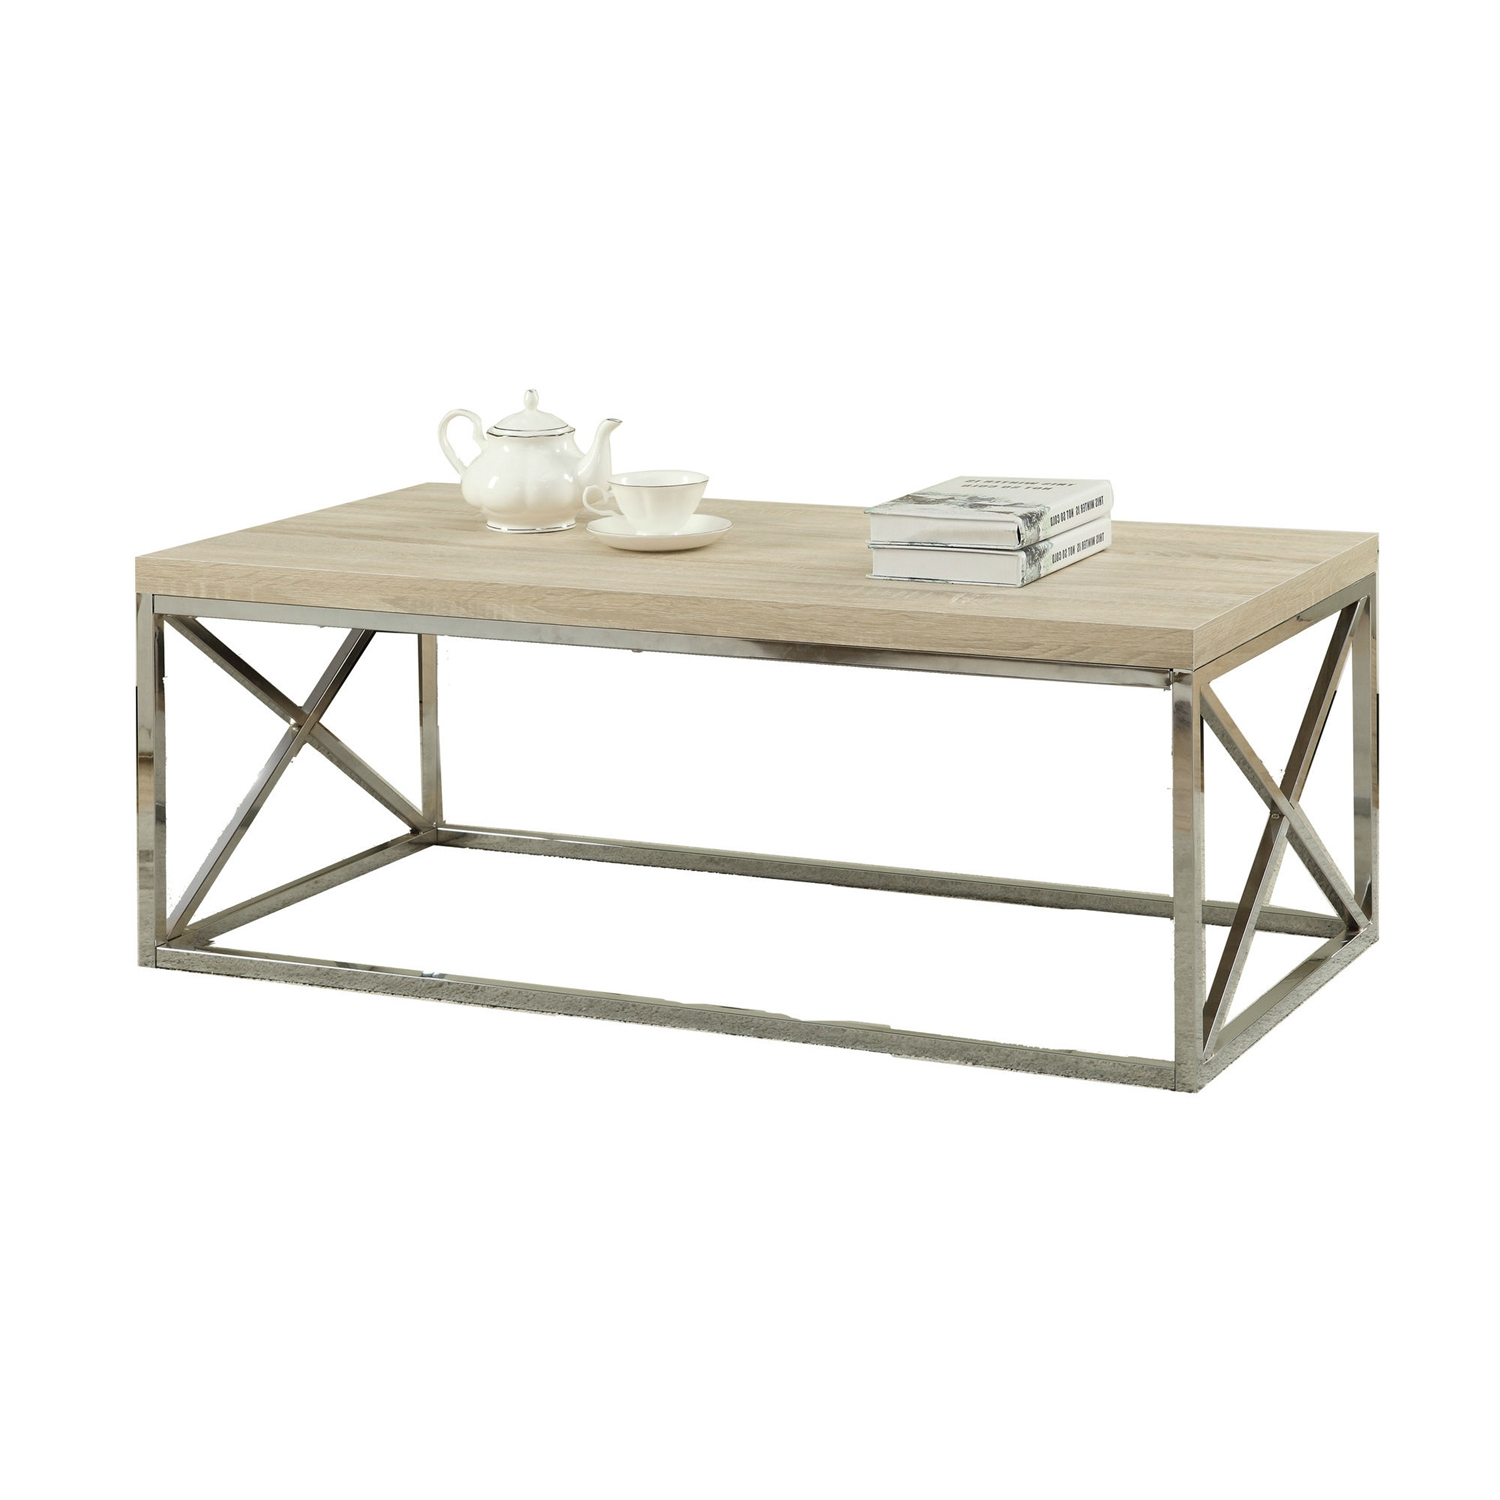 Wood For Coffee Table Top: Modern Rectangular Coffee Table With Natural Wood Top And